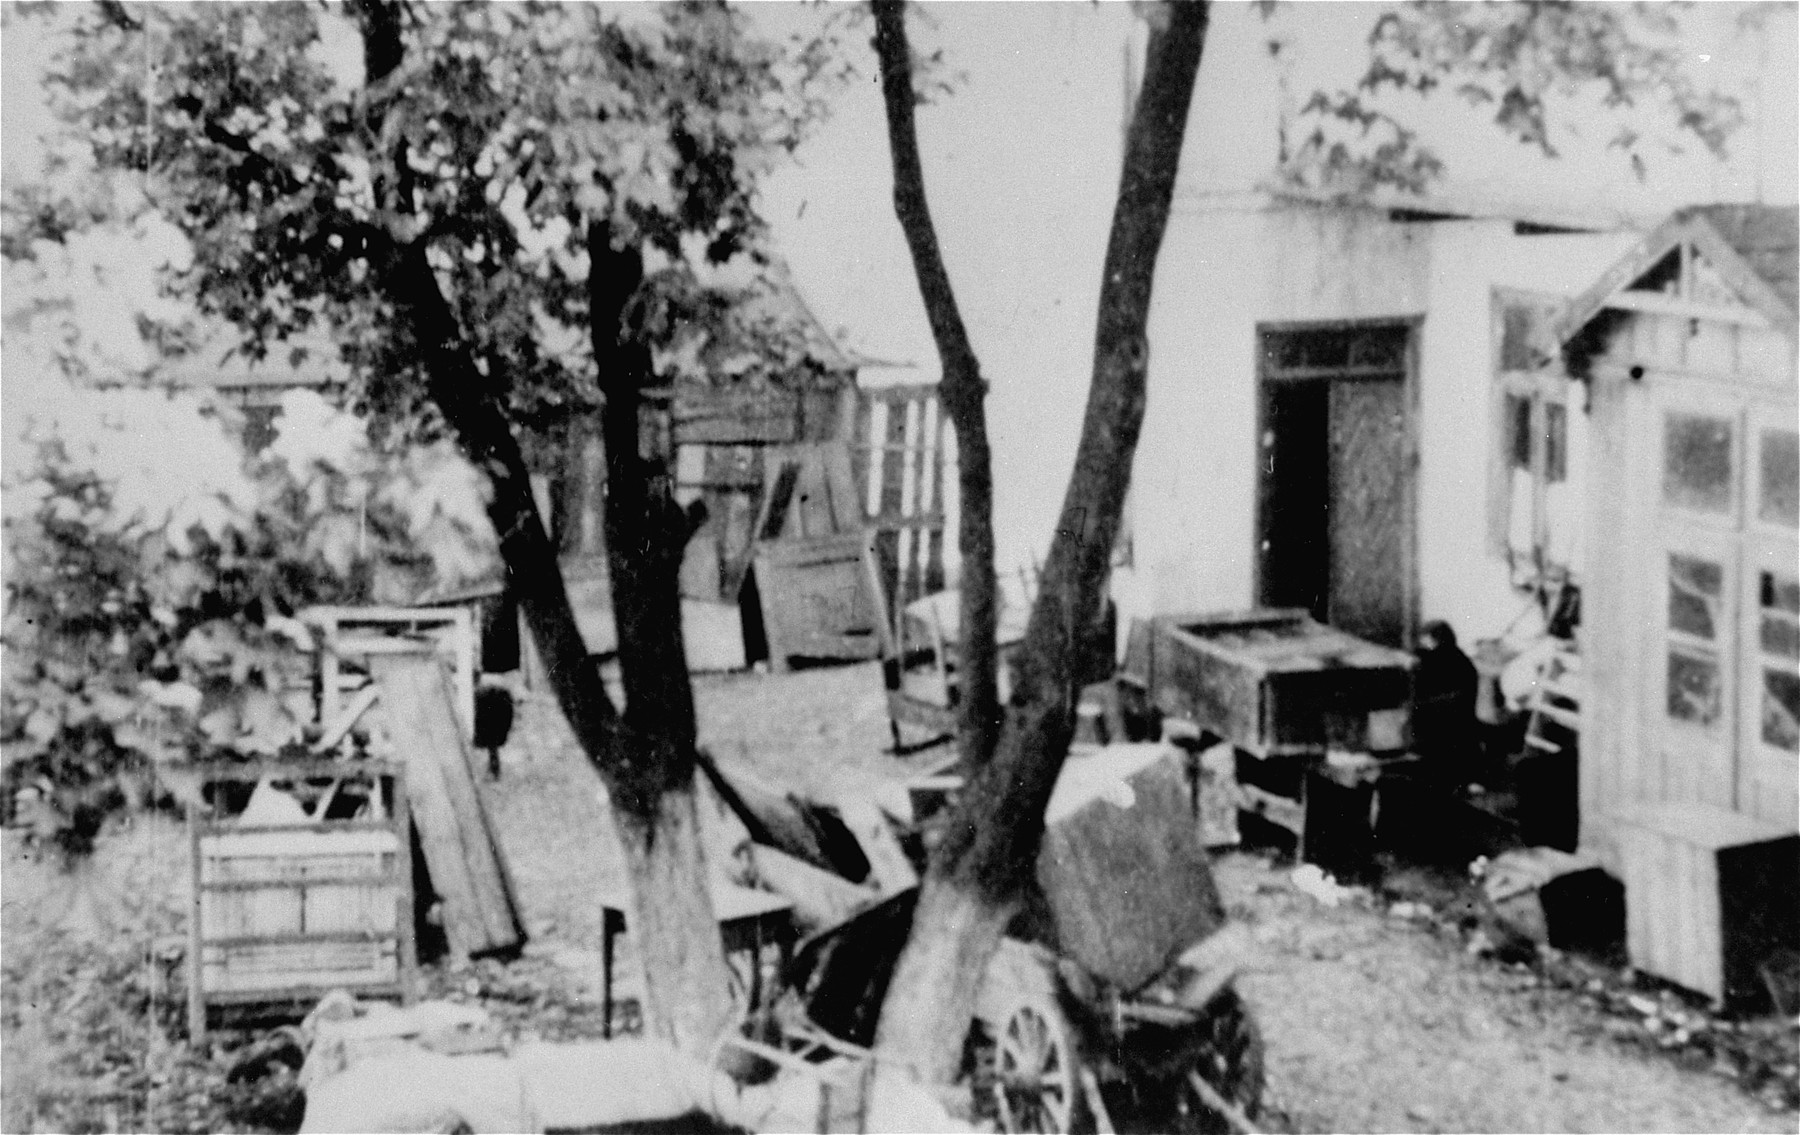 View of the abandoned furnishings of Jews who have been deported from the ghetto.